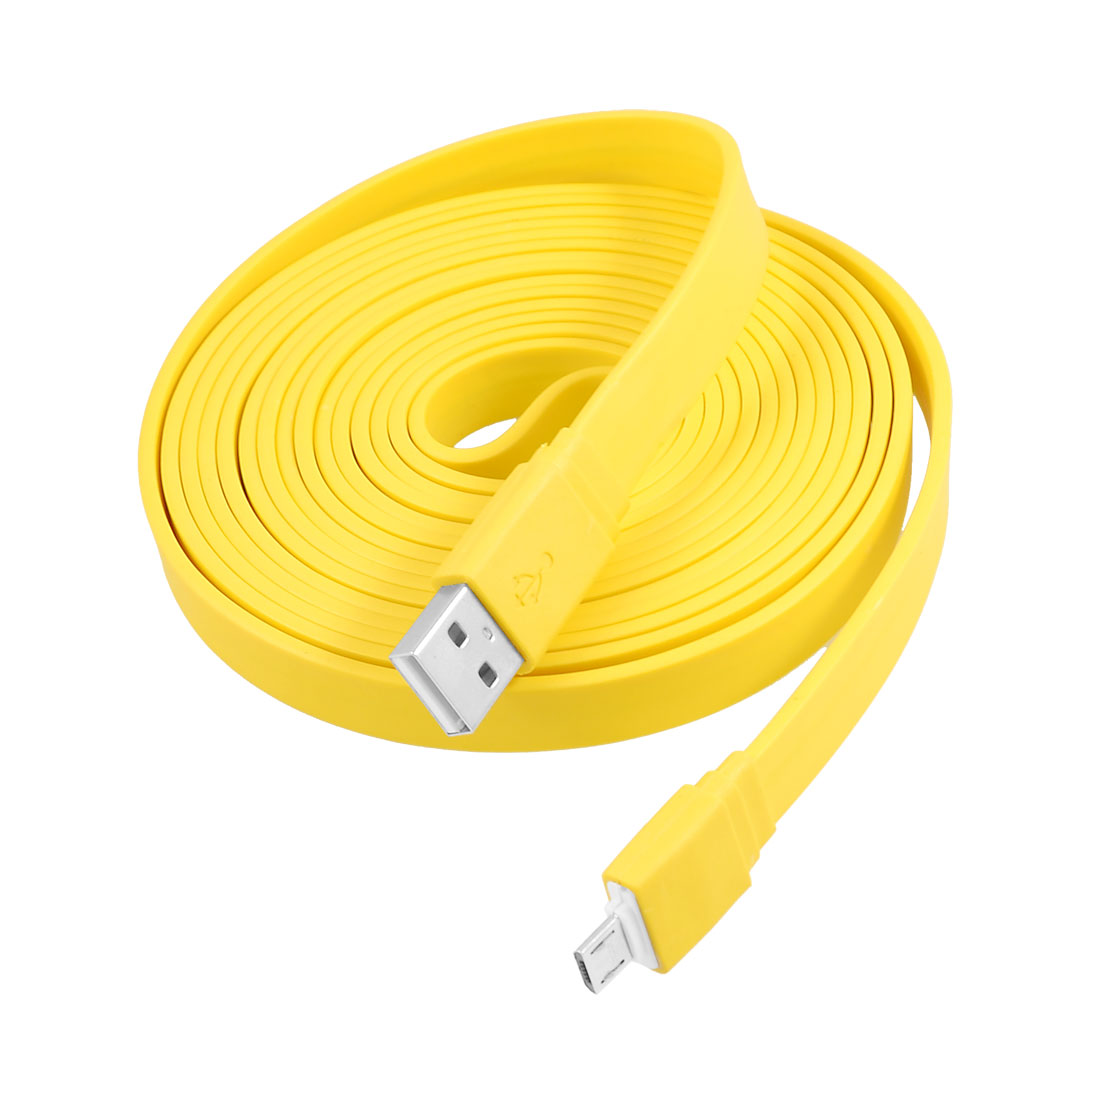 3 Meters 9.8ft USB 2.0 A to Micro 5 Pin USB Connector Cable Yellow